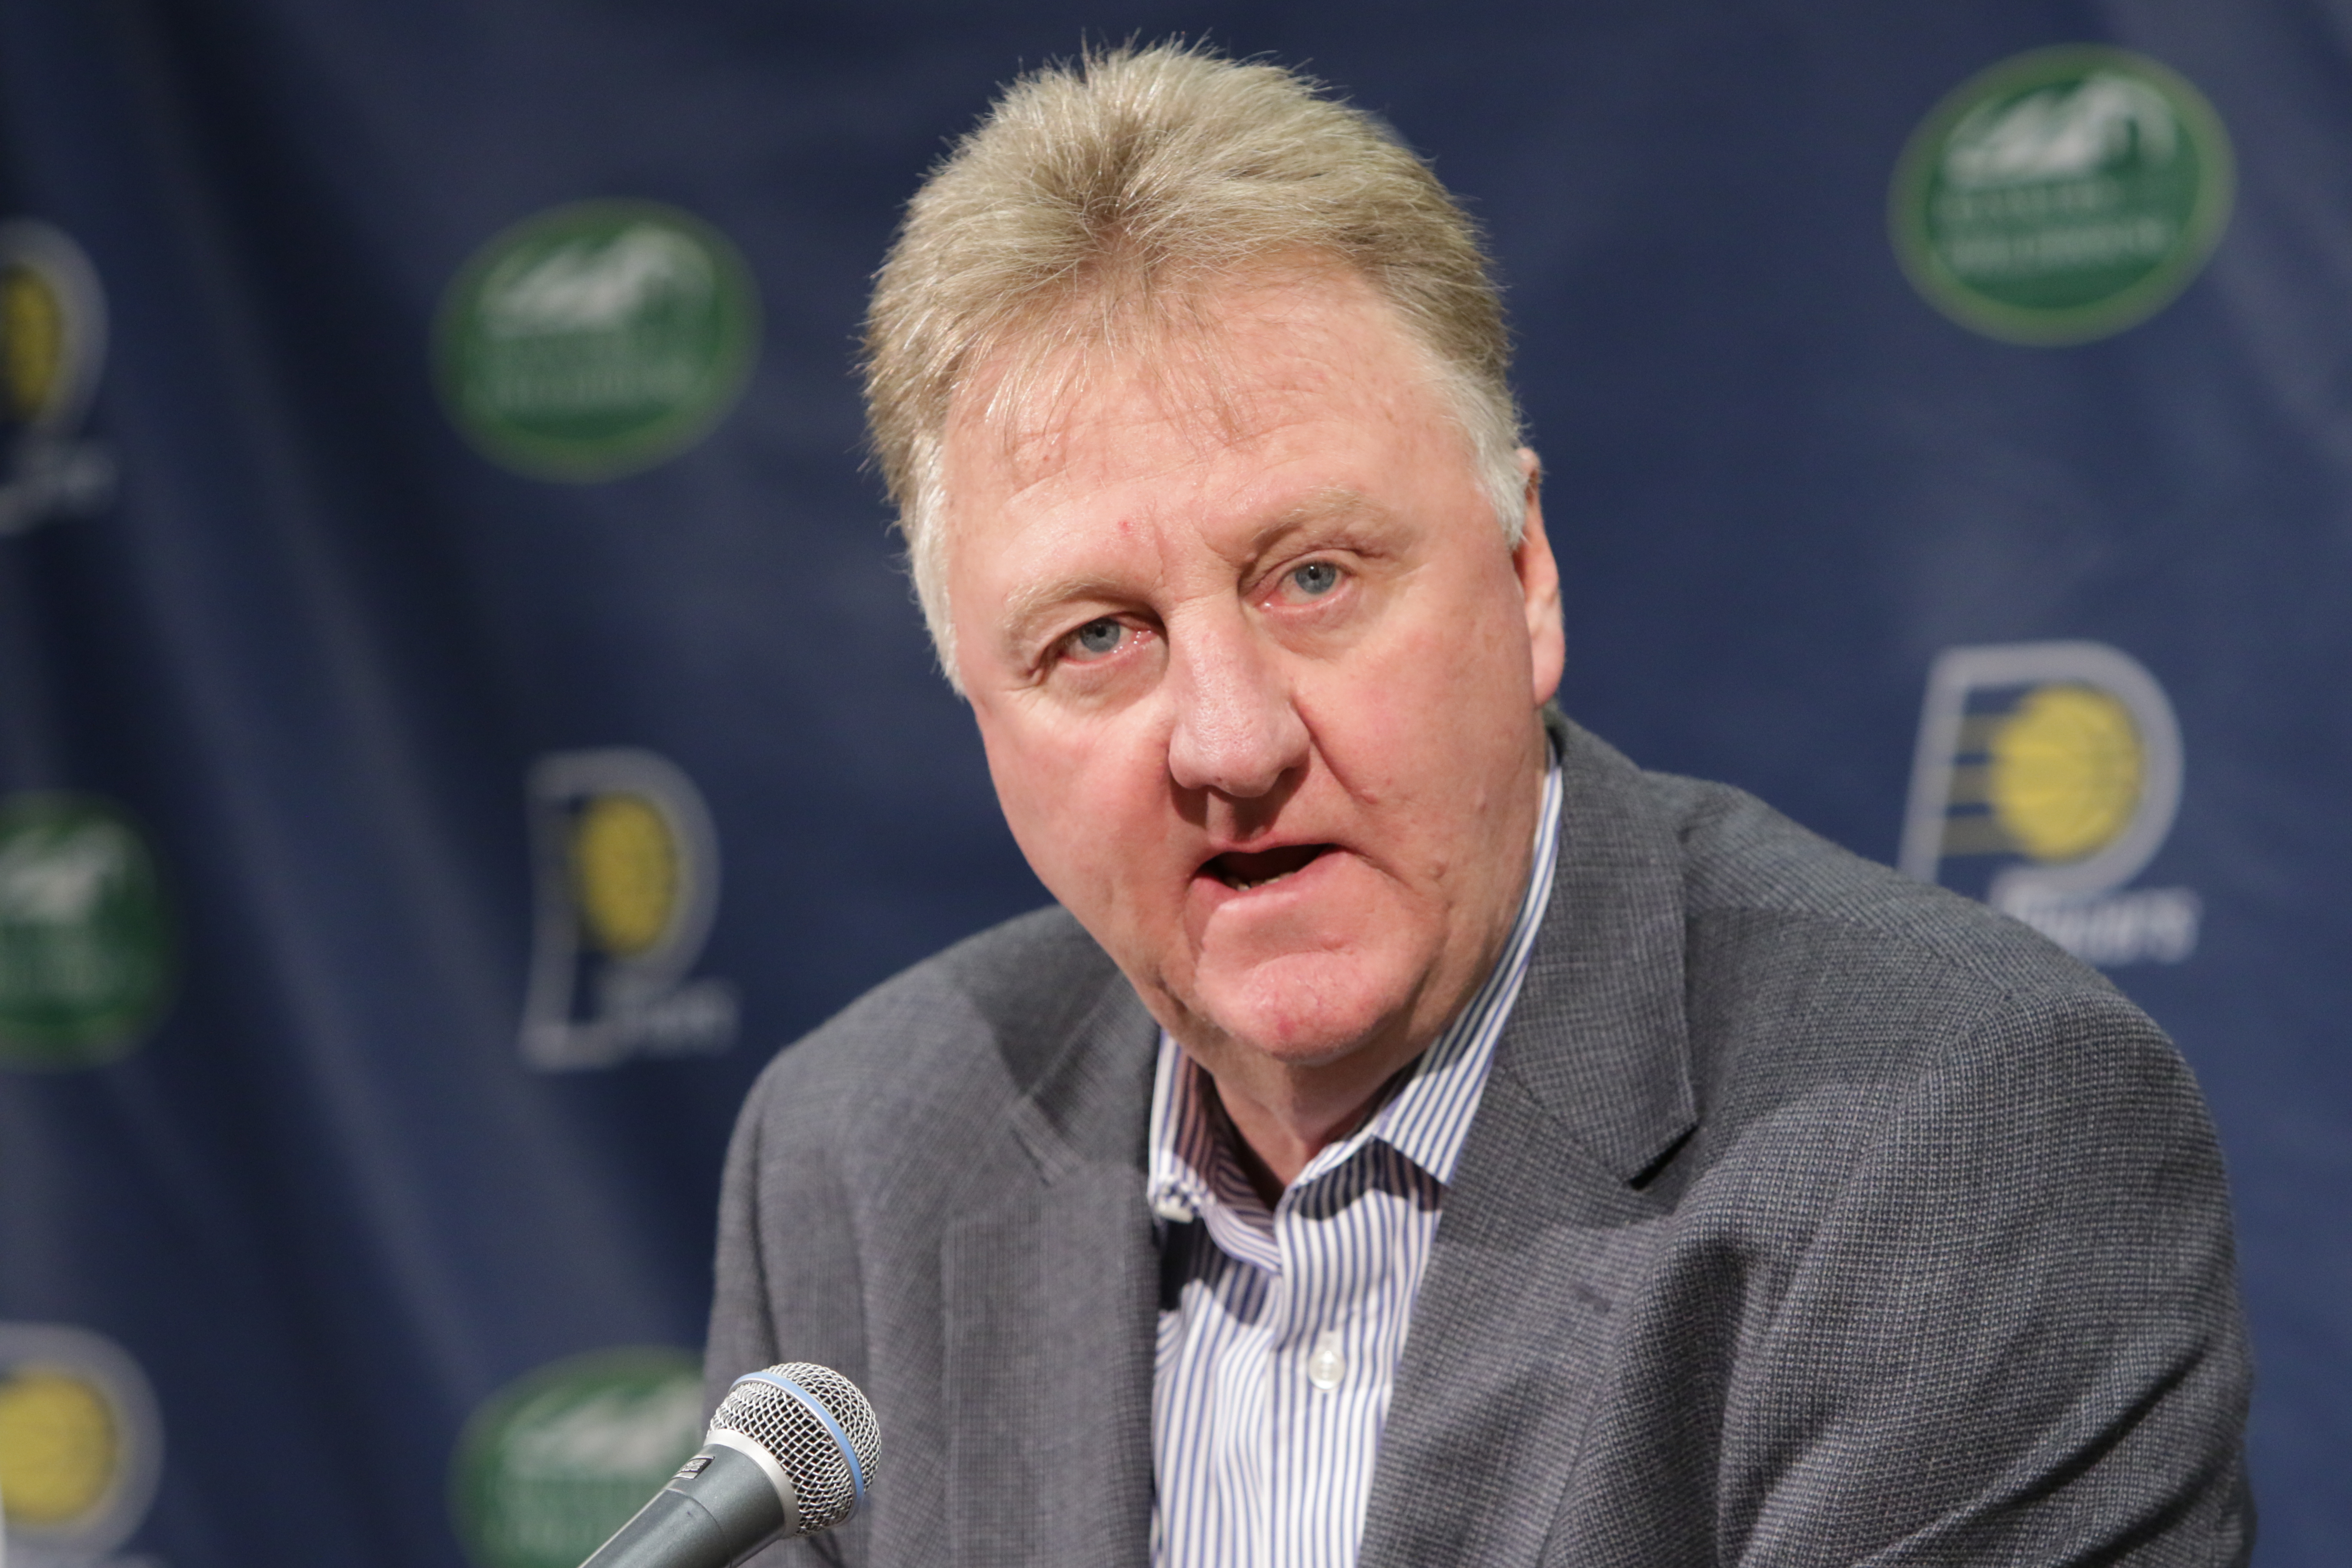 Larry Bird introduces Nate McMillan as the new head coach of the Indiana Pacers at Bankers Life Fieldhouse in Indianapolis on May 16, 2016.